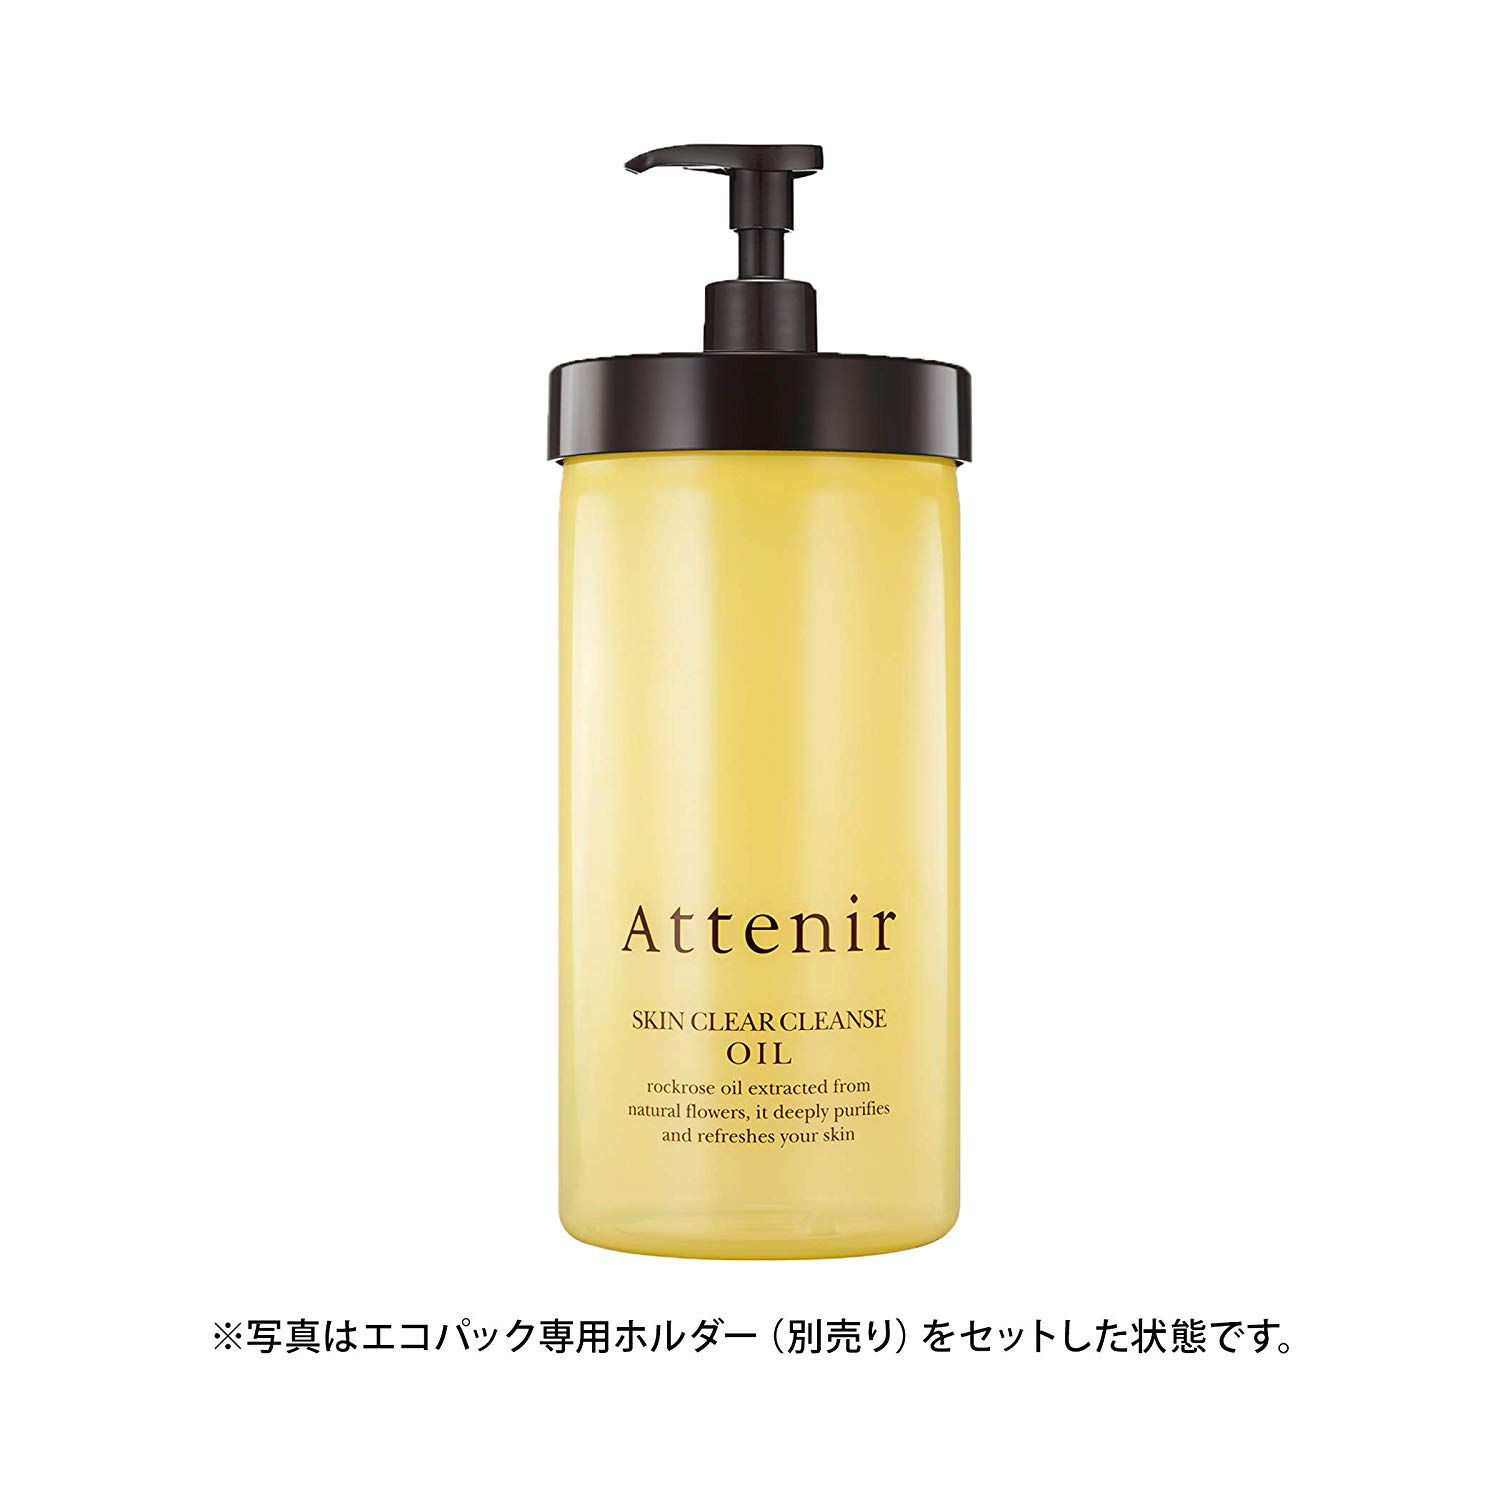 Attenir Skin Clear Cleanse Oil Aroma Type Eco Pack